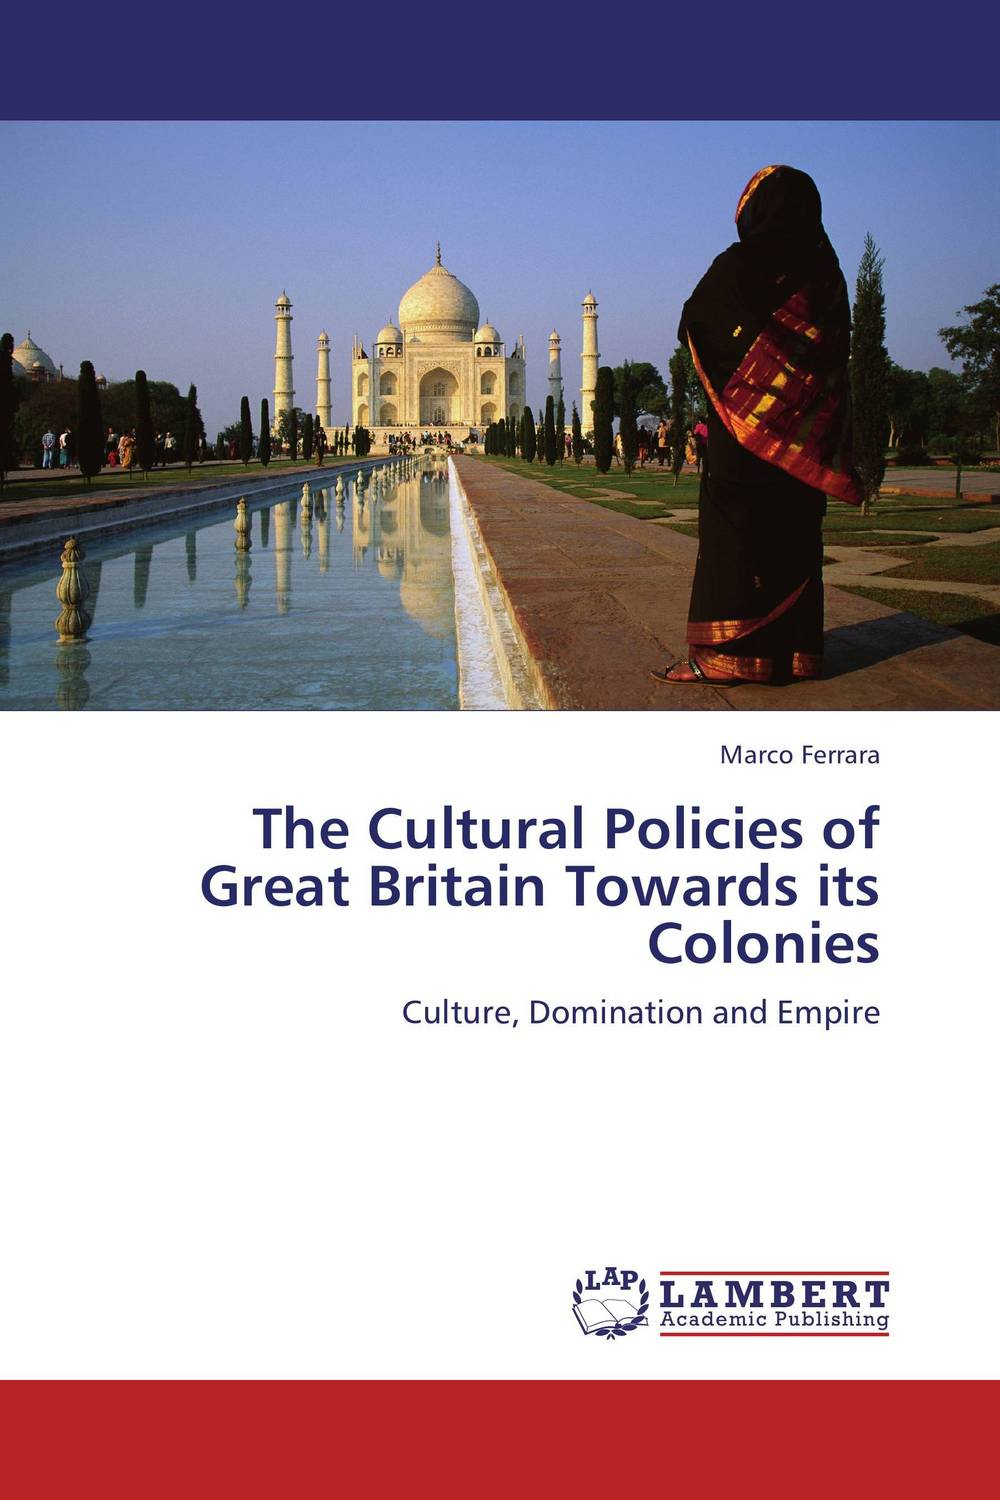 The Cultural Policies of Great Britain Towards its Colonies crossroads of empire – the middle colonies in british north america